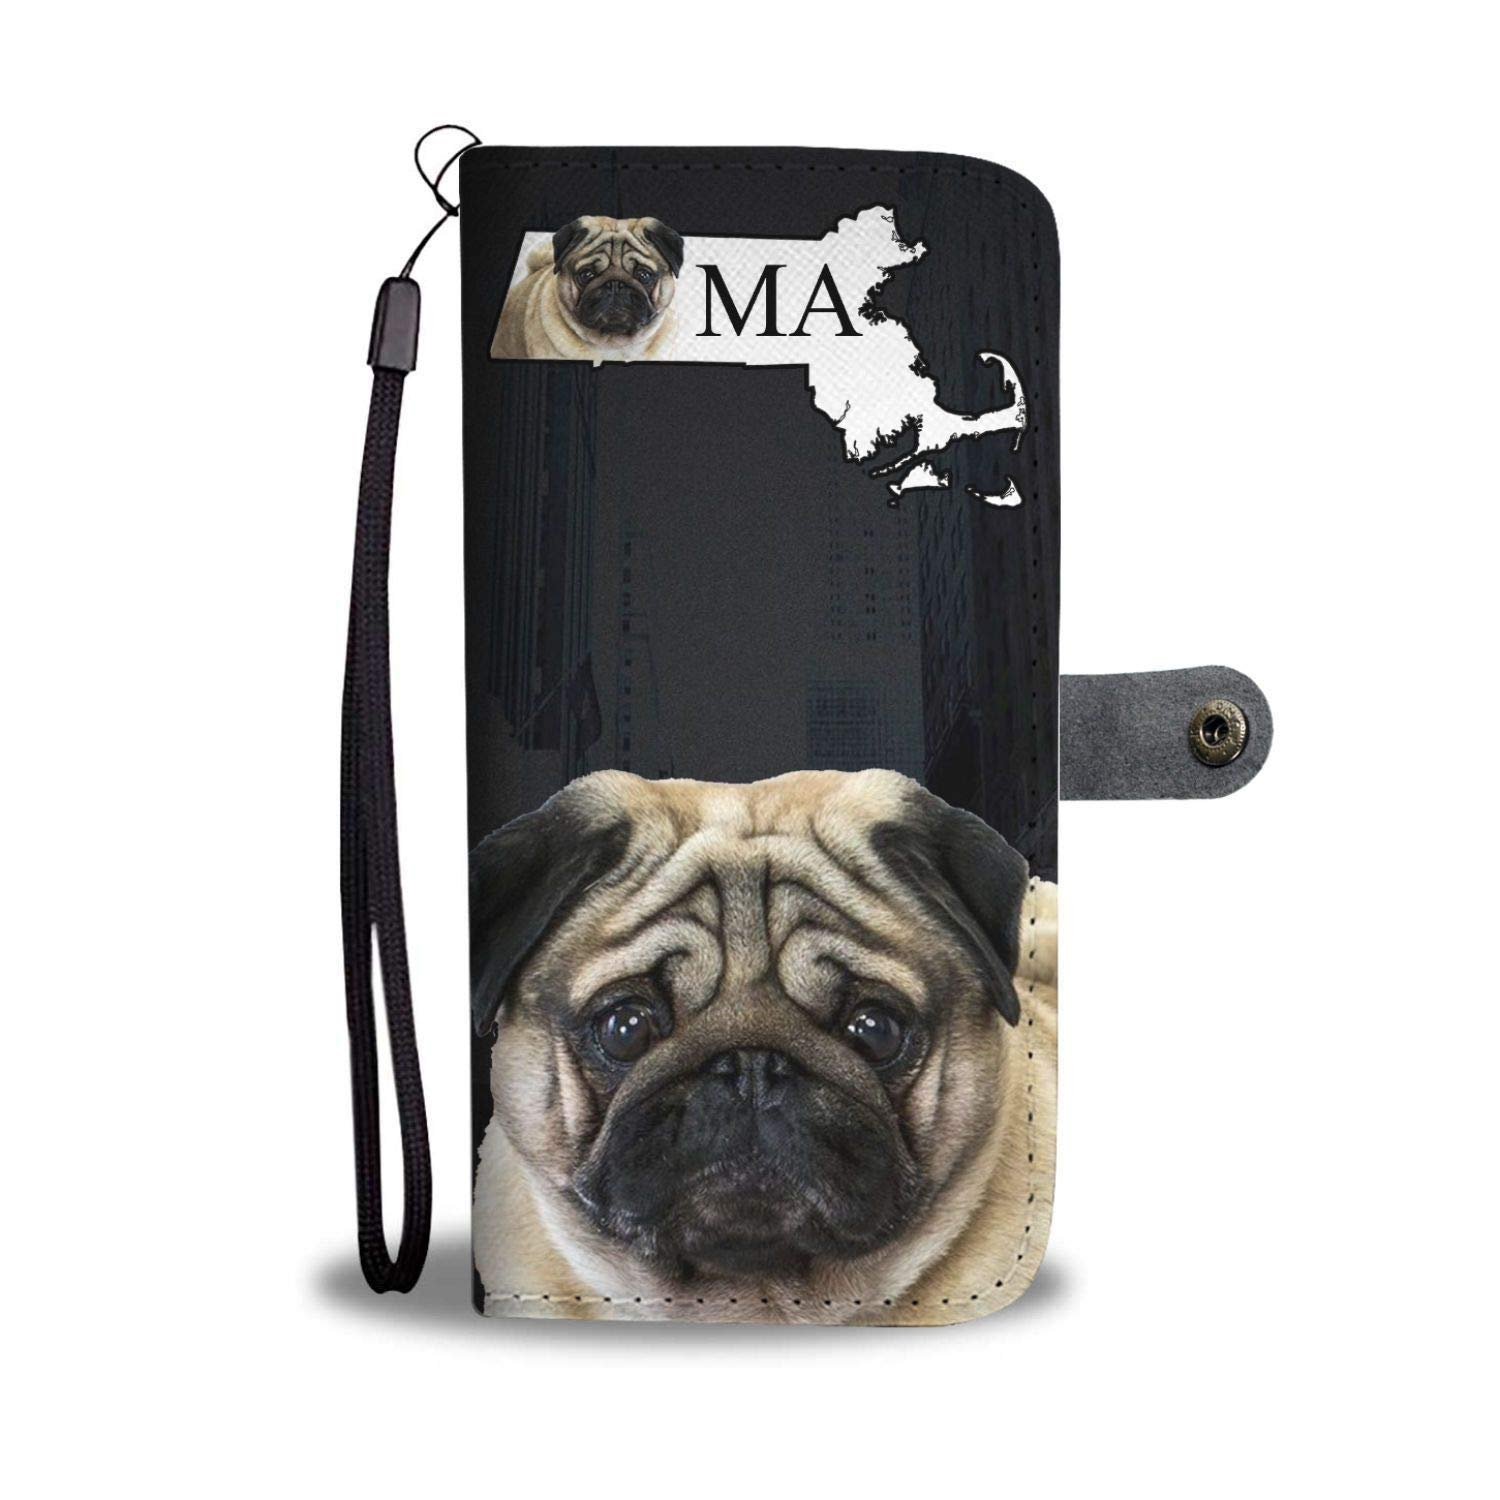 Pug Dog Printed Leather Wallet Case for Samsung, iPhone, LG, Goole Pixel, Huawei, HTC, Motorola, Xiaomi- Dog Printed Magnetic flip Cover with Card Slots ...